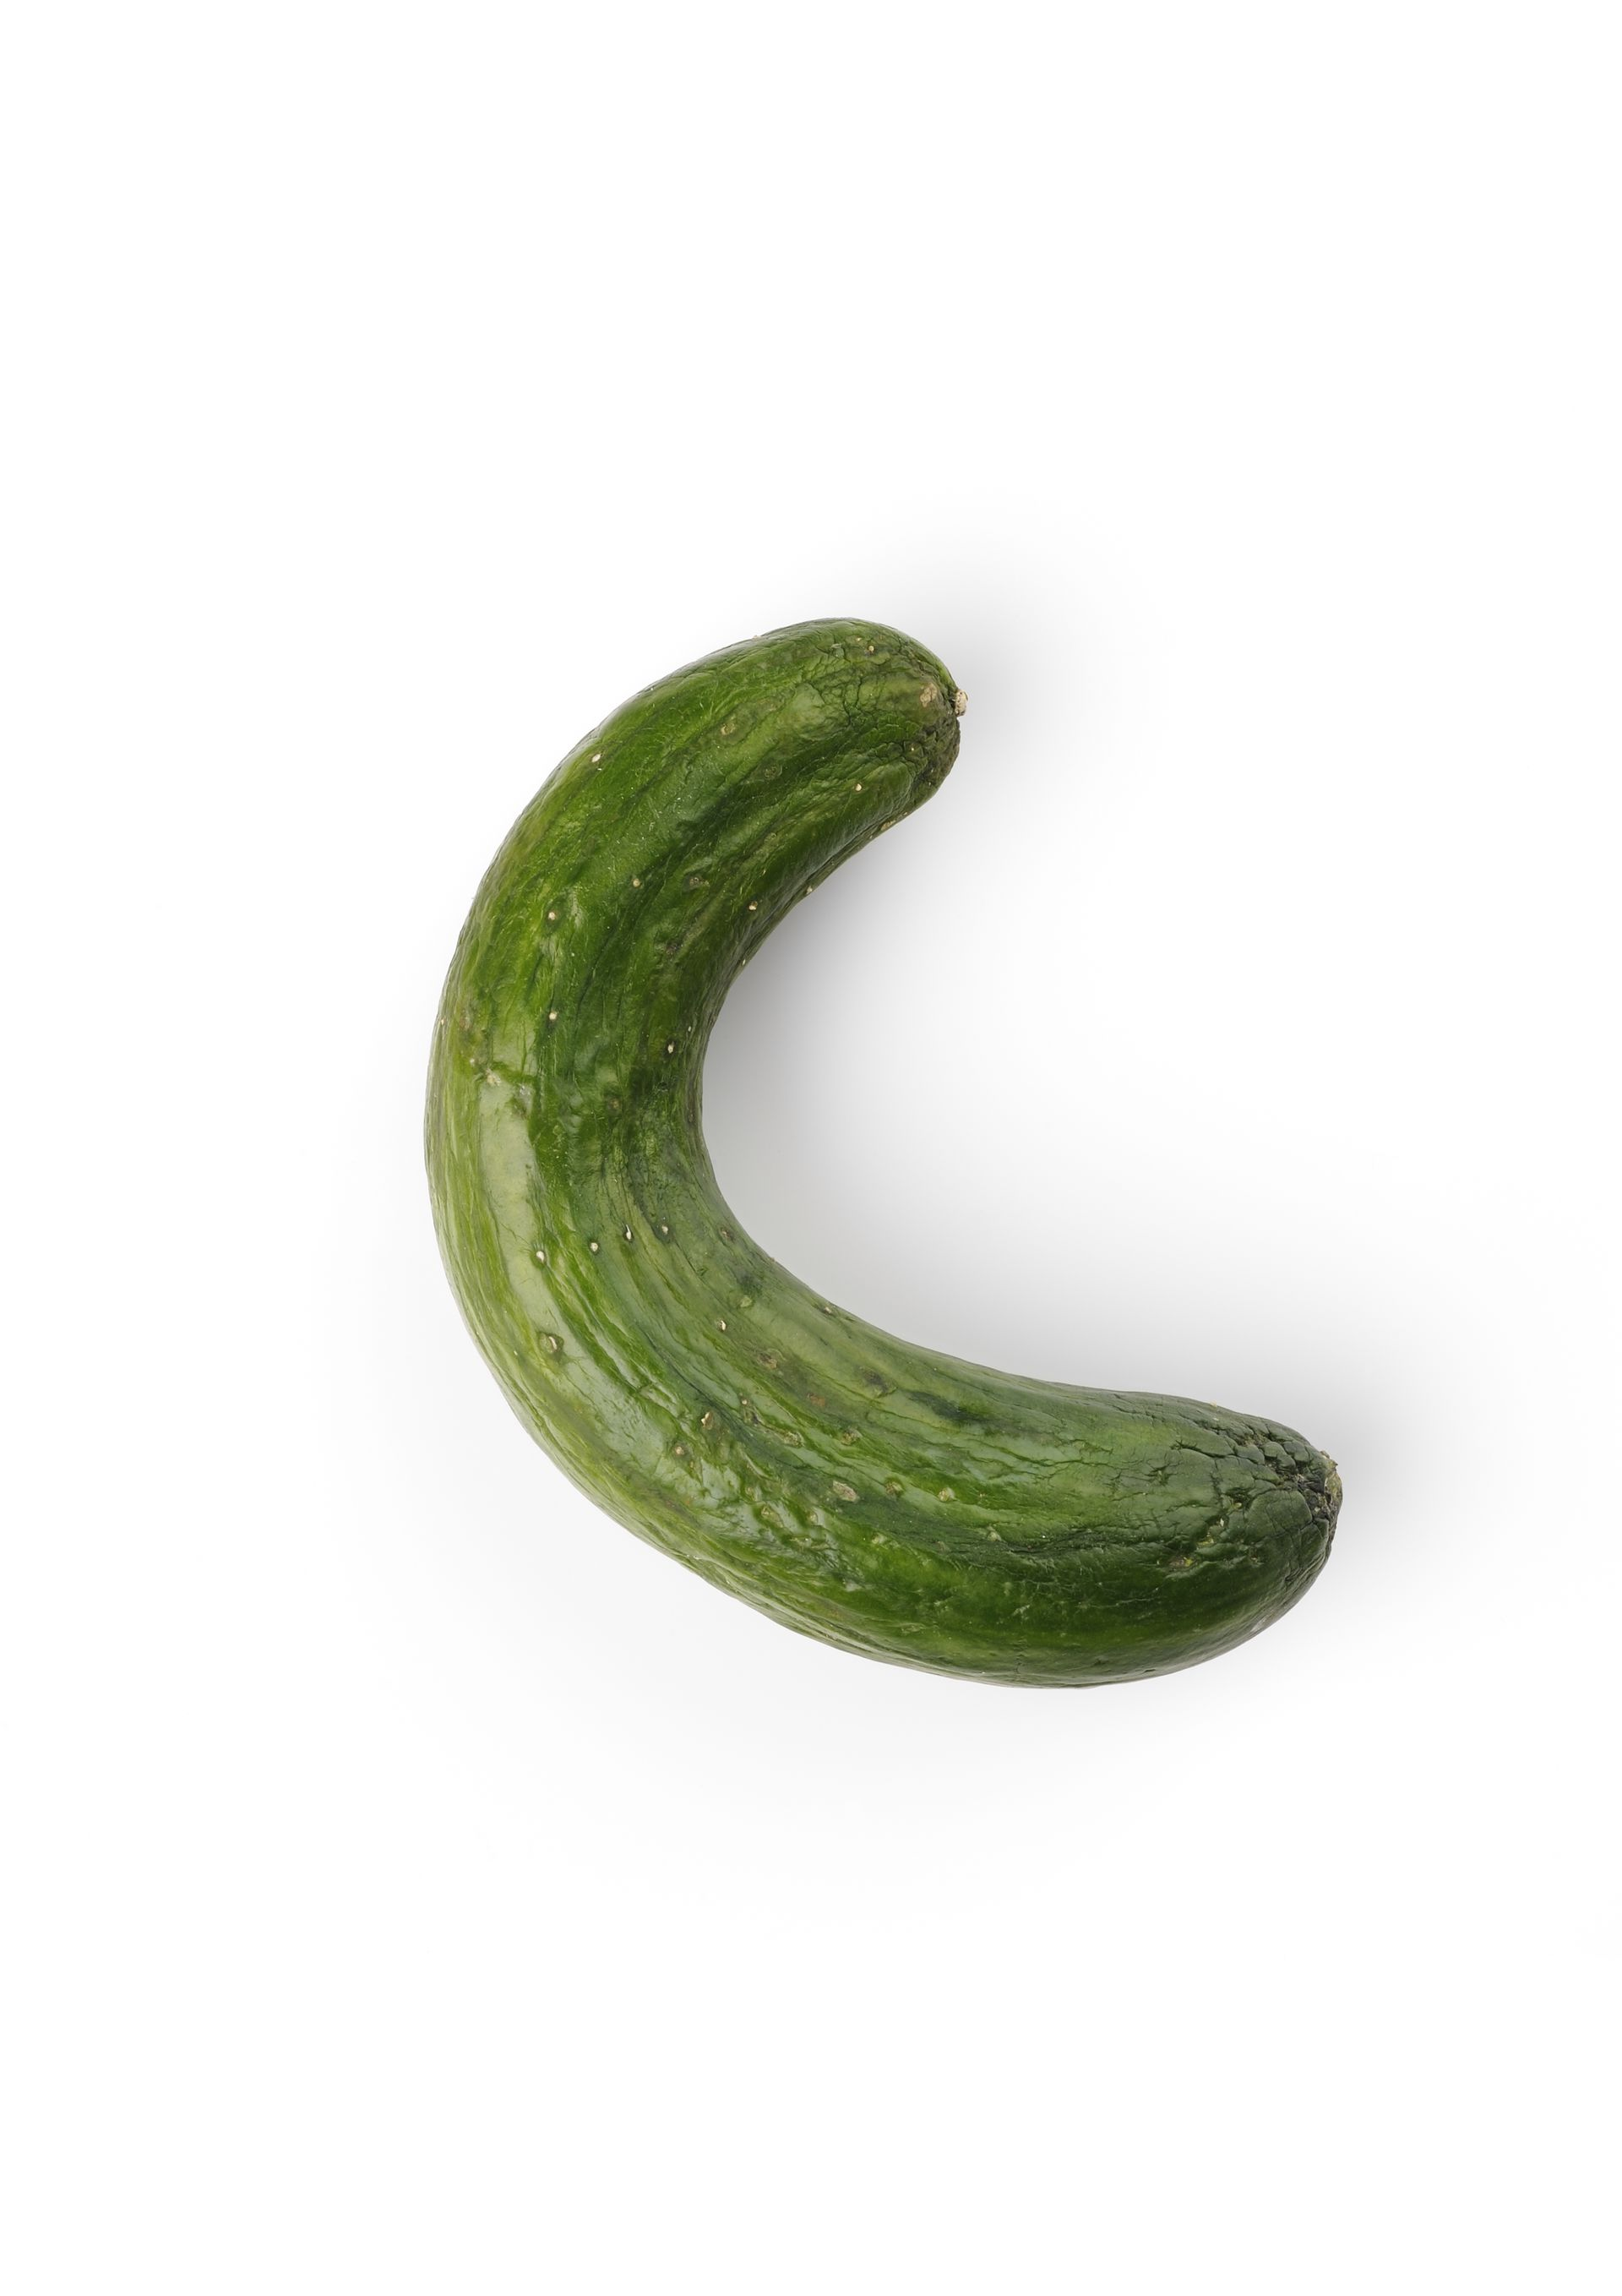 When A Cucumber Is Not A Cucumber